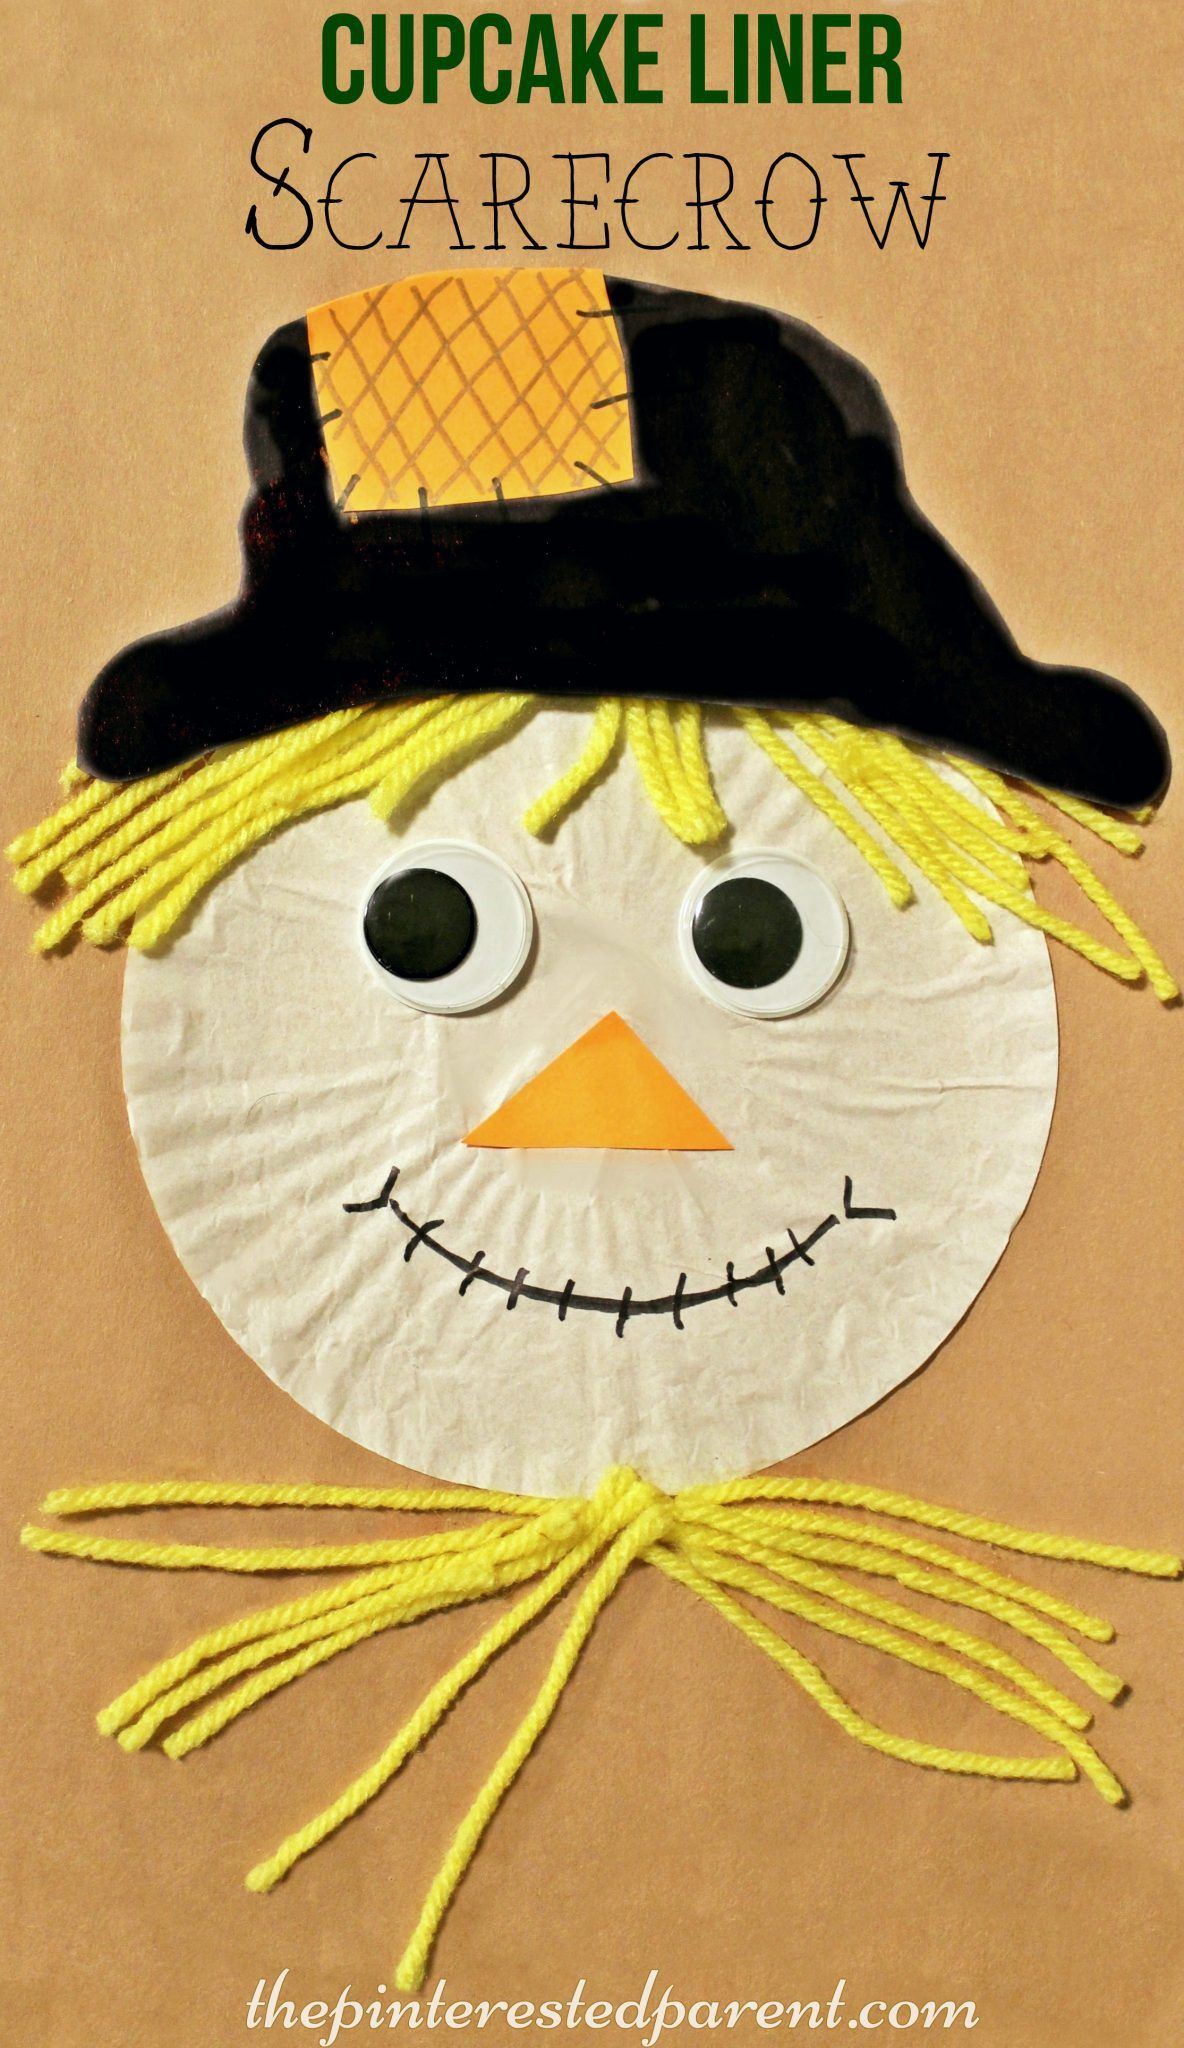 Cupcake Liner Scarecrow – The Pinterested Parent